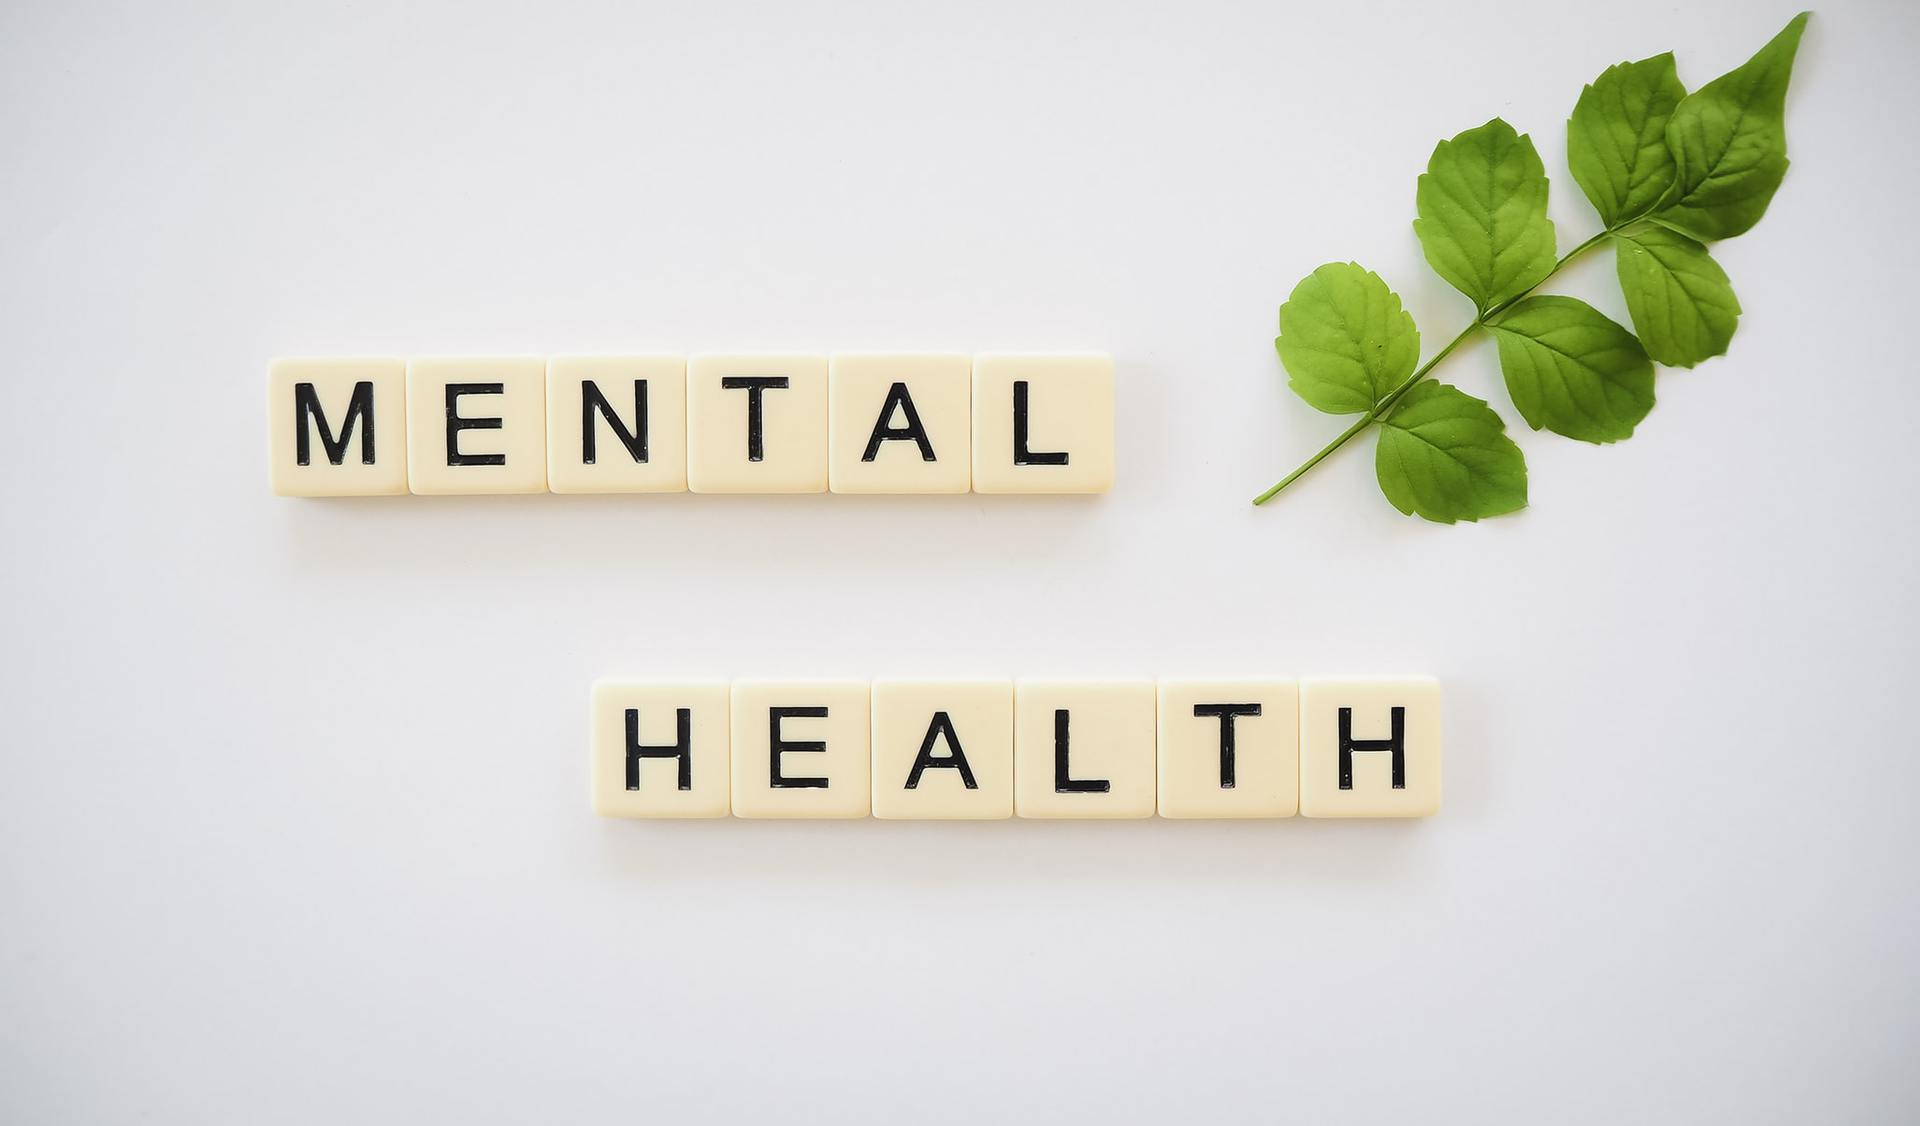 Mental health matters: UCPL to host programs on mental health, emotional  wellness and surrounding stigma